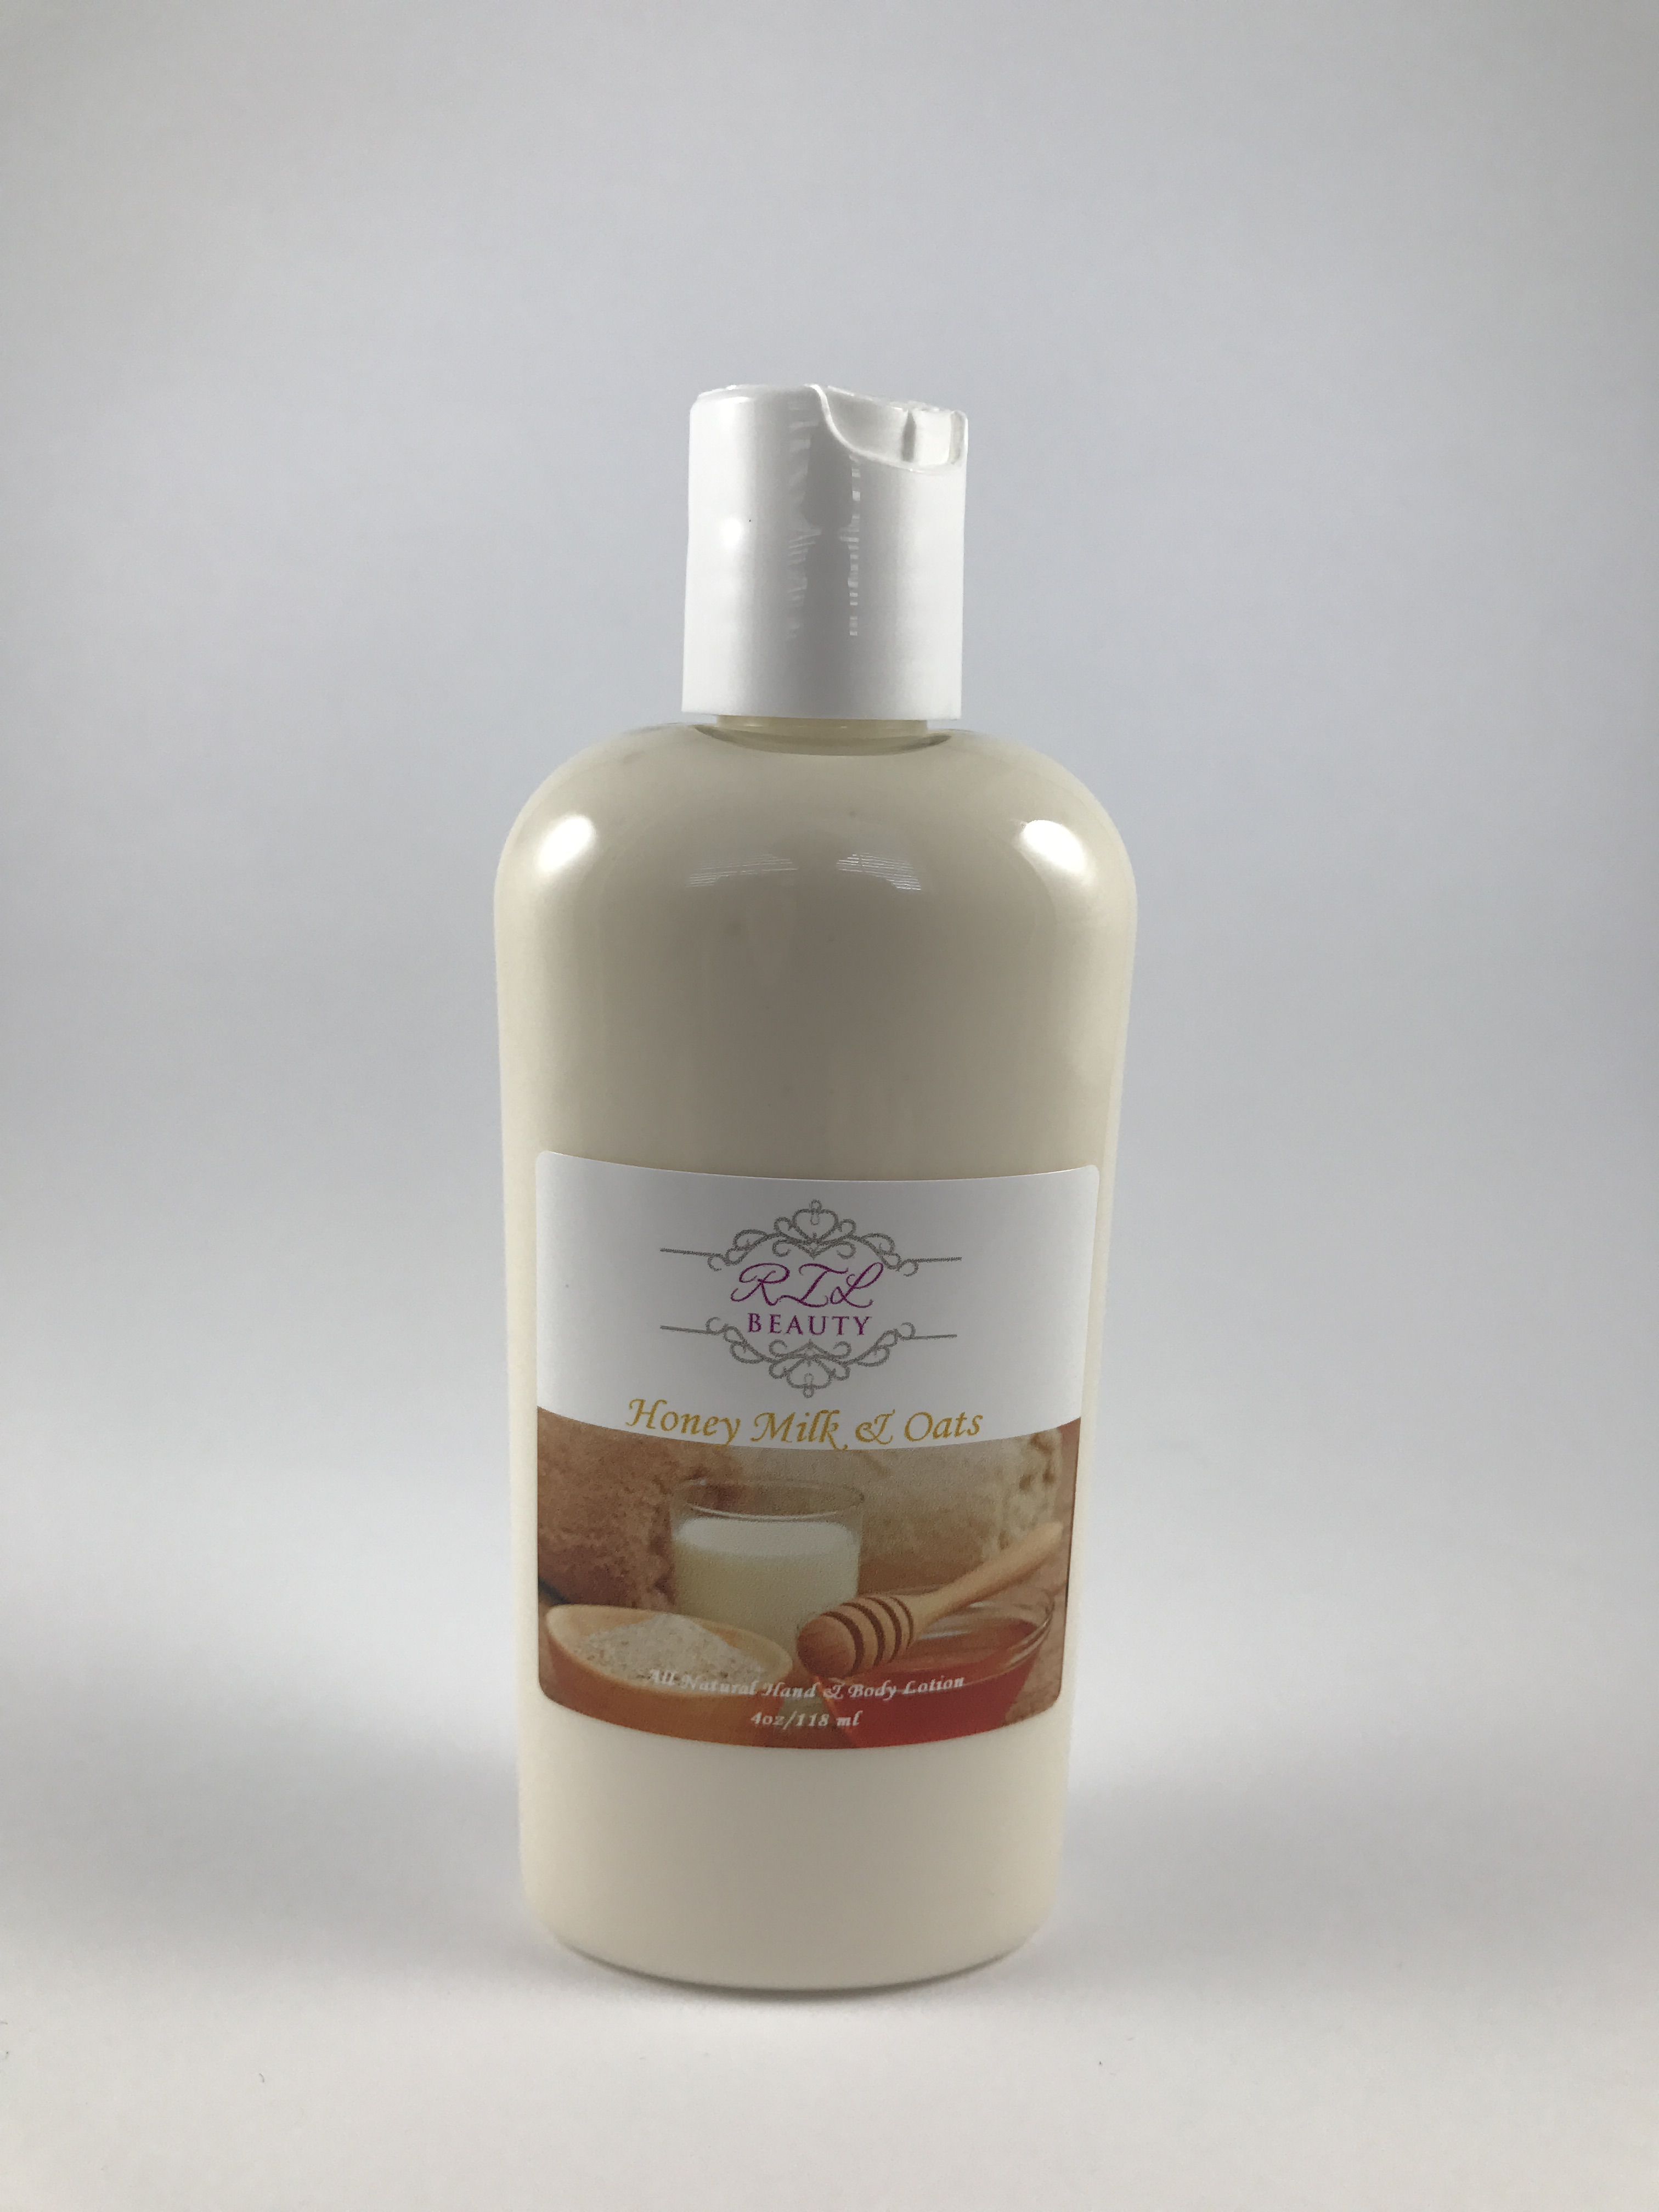 Honey Milk & Oats 2 oz. Lotion  (Travel Size)